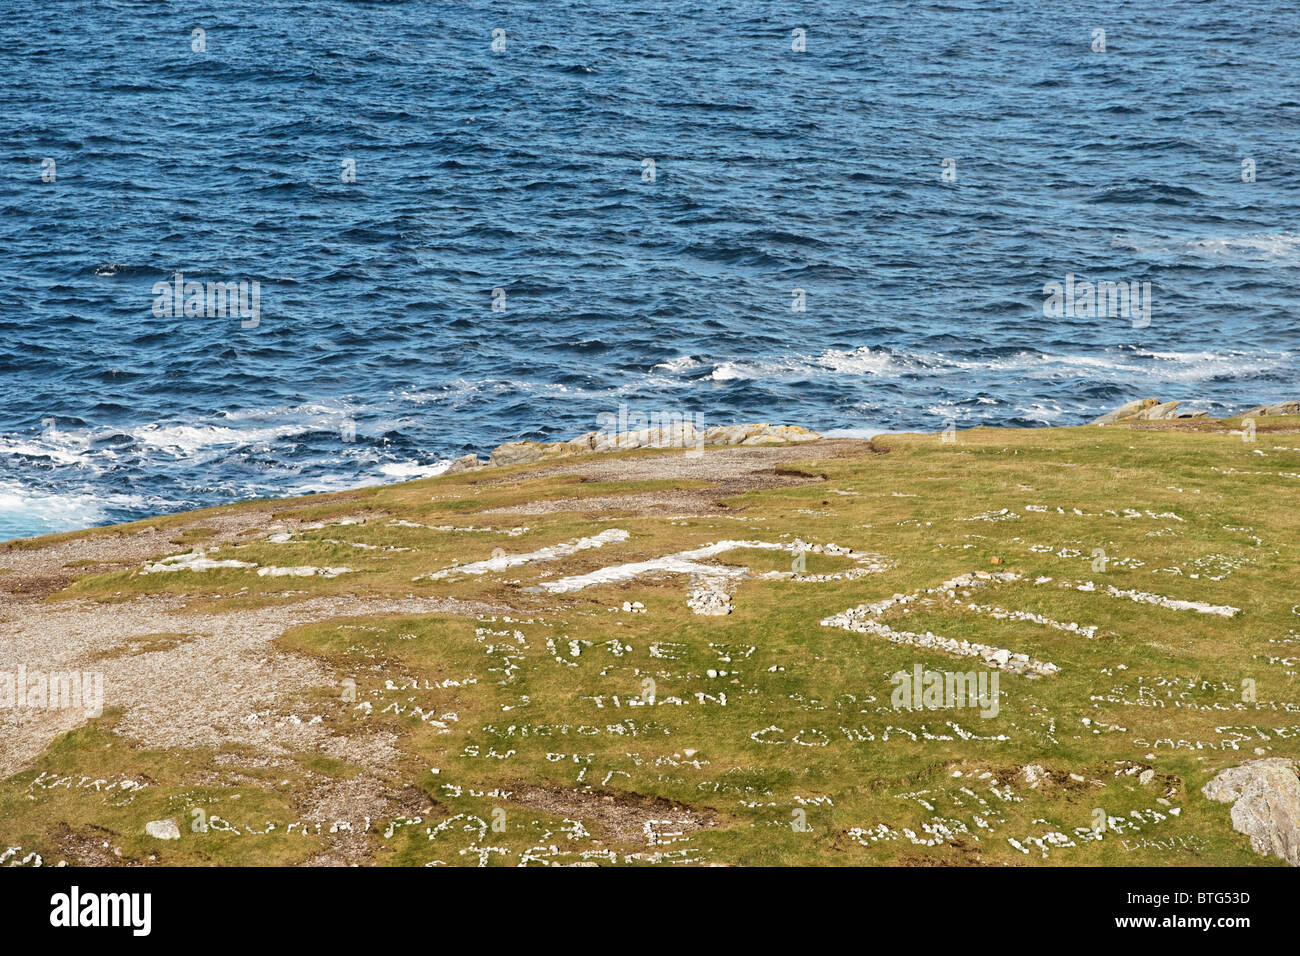 The word 'EIRE' spelled out in stones on Malin Head, Inishowen Peninsula, County Donegal, Ulster, Ireland. - Stock Image